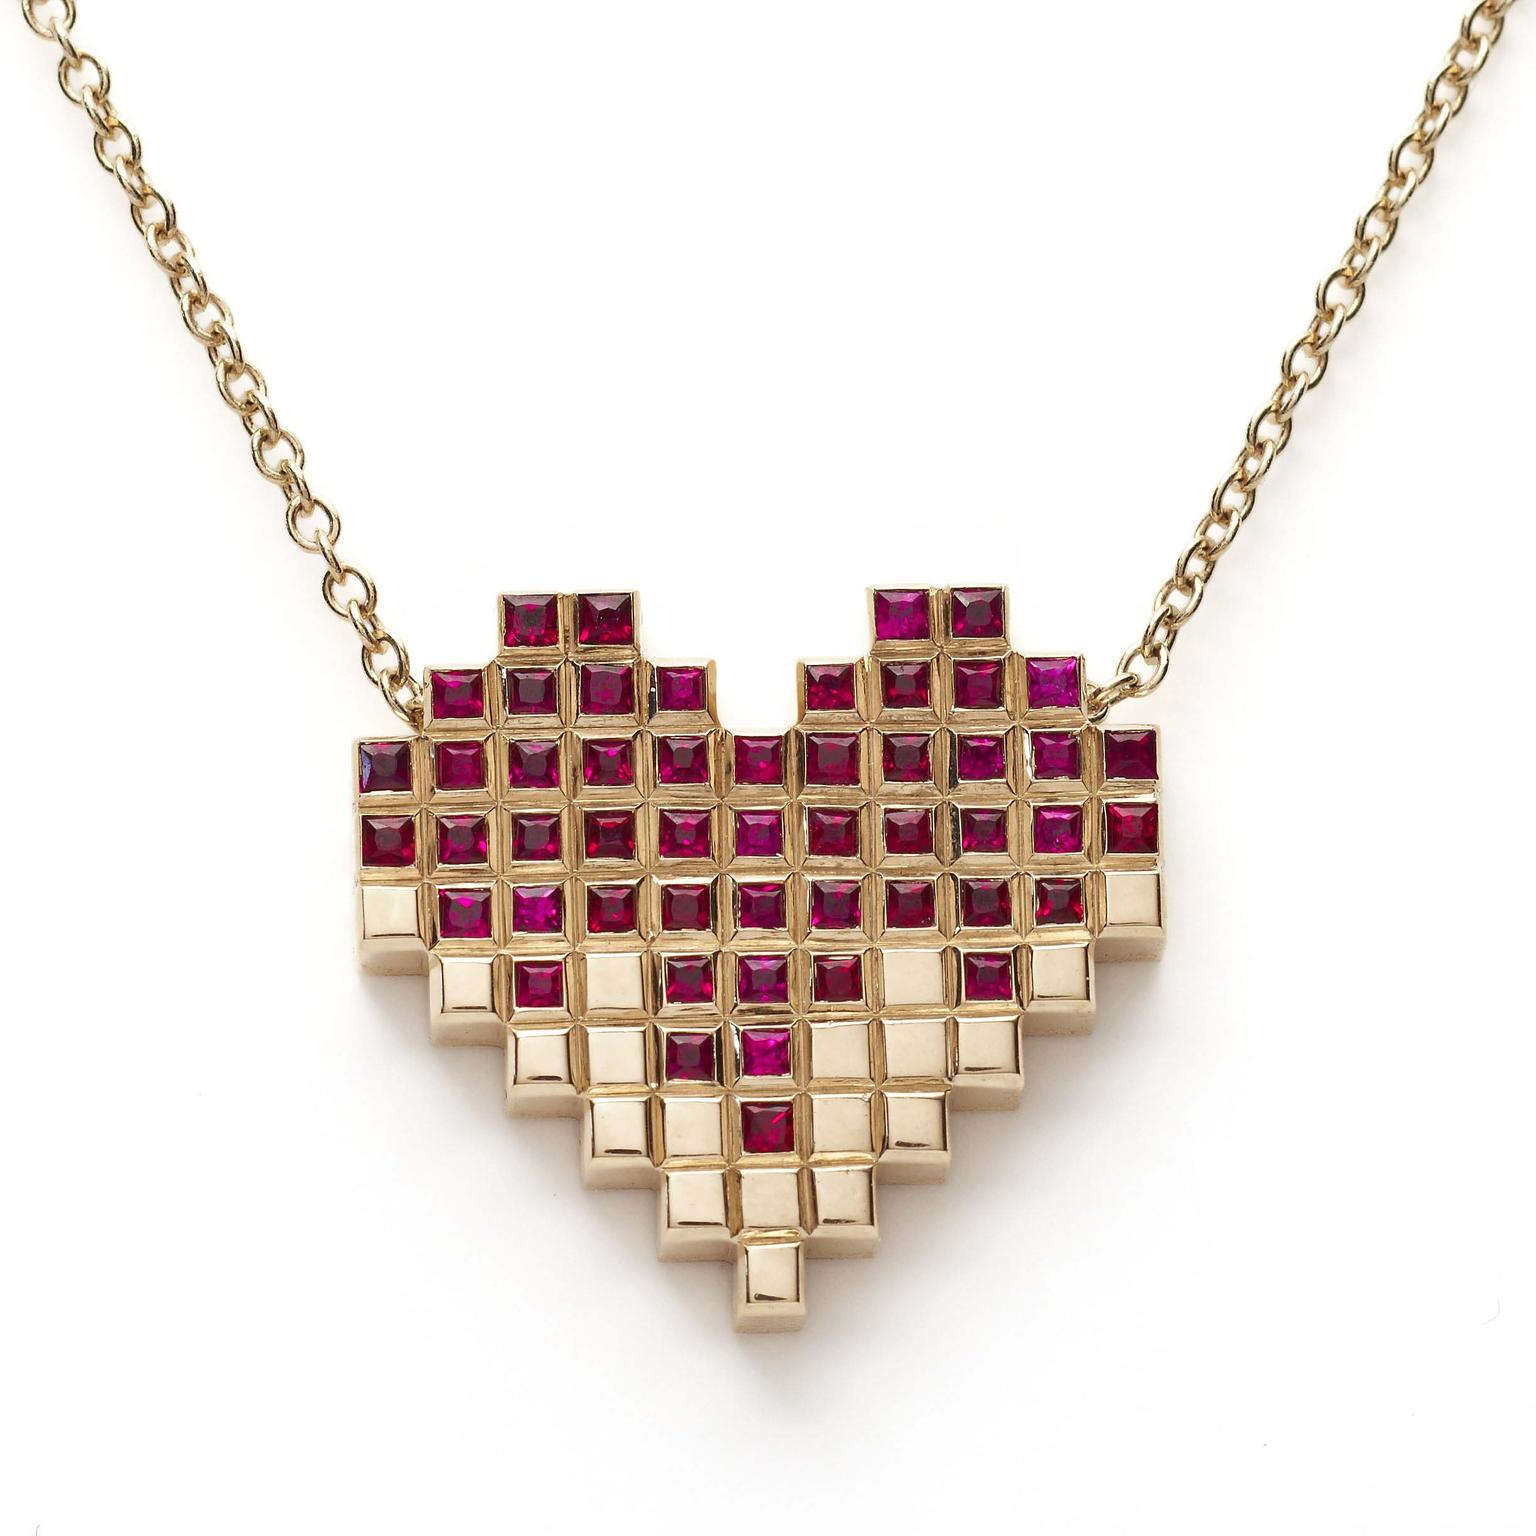 Pixelated jewels have flown the games console to conquer our hearts